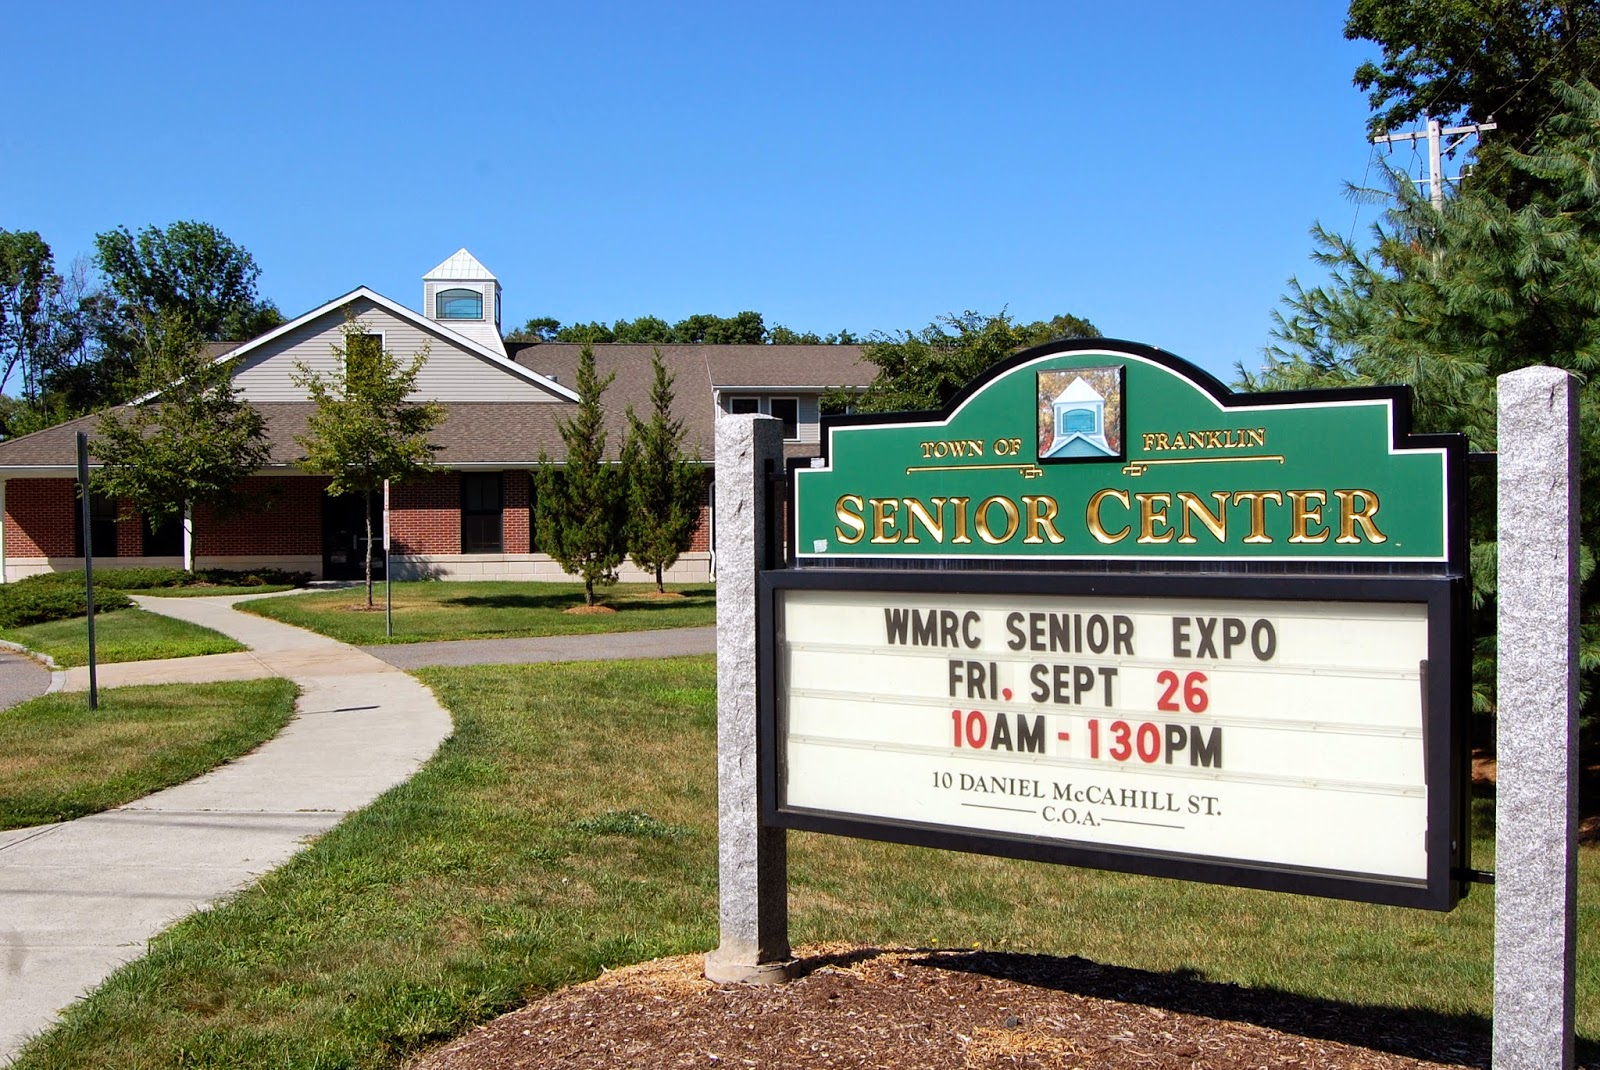 WMRC Senior Expo - Sep 26